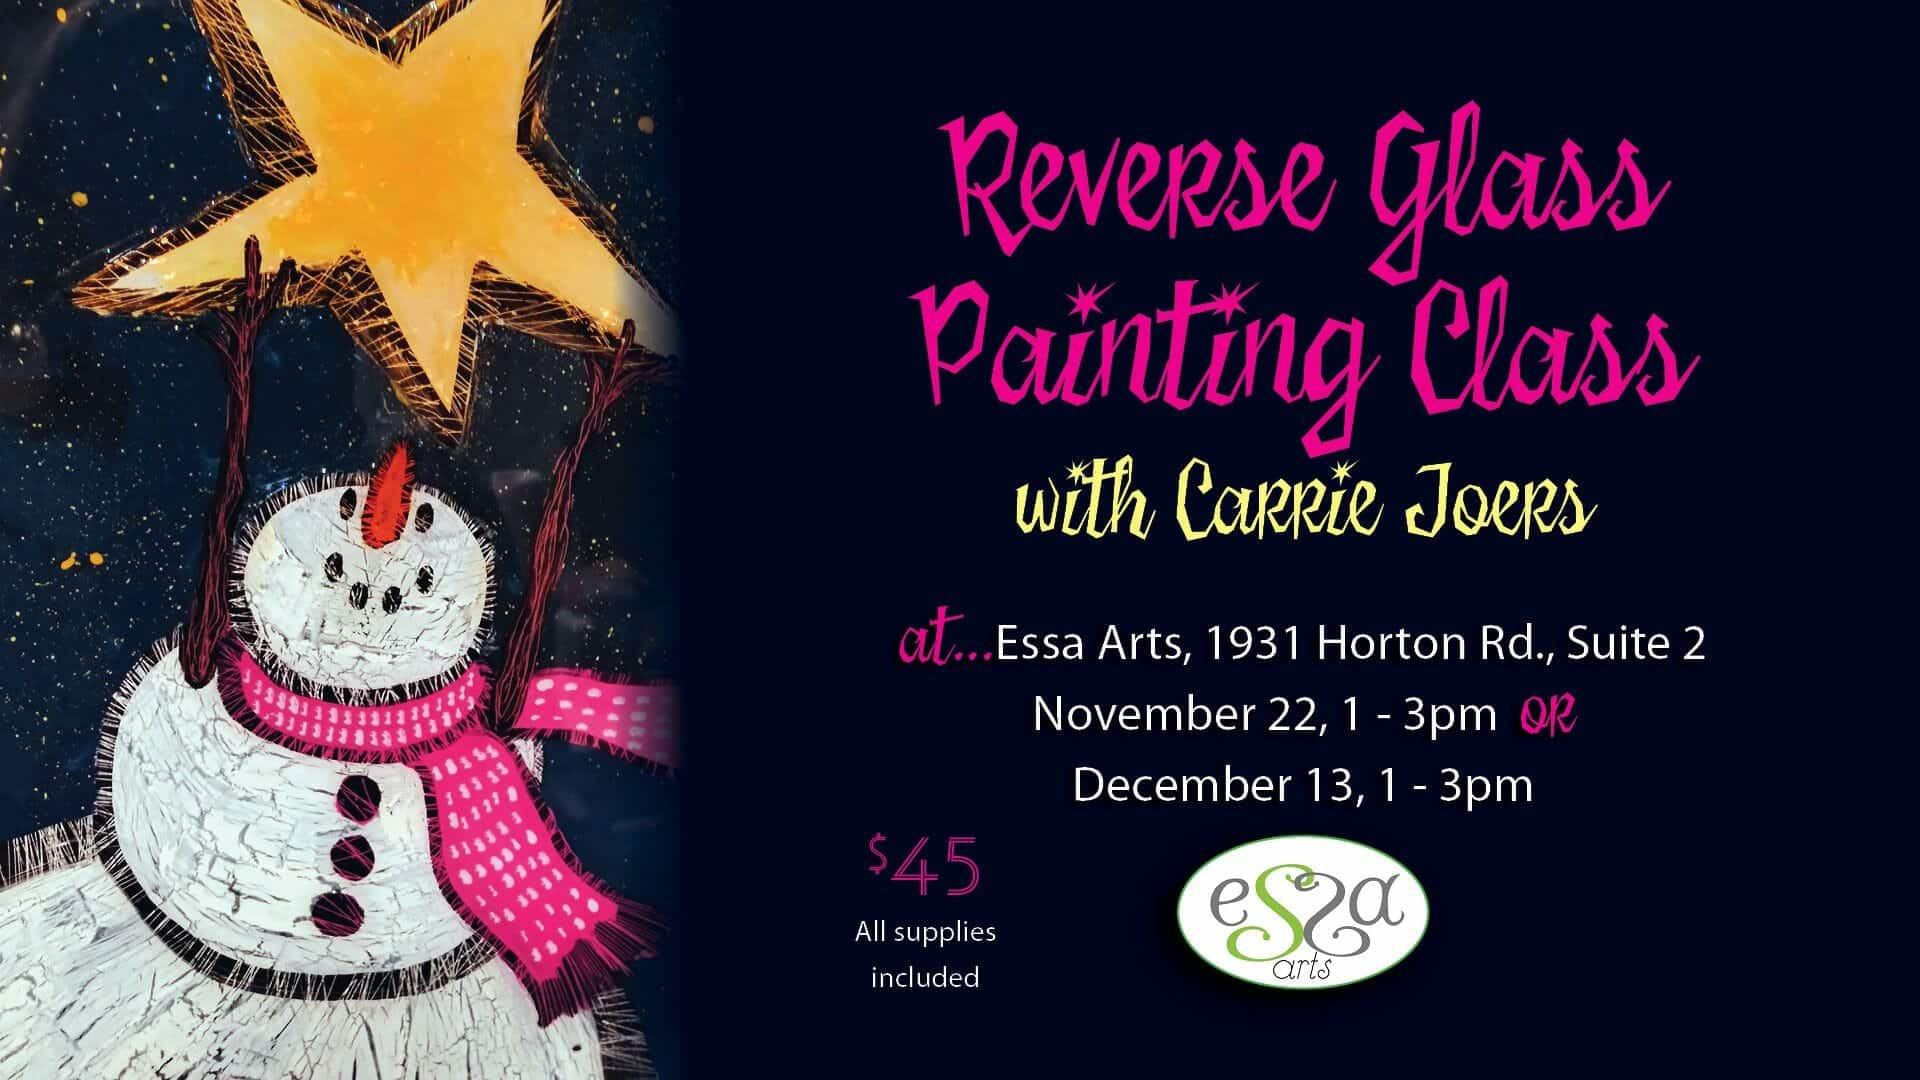 Reverse Glass Painting Class